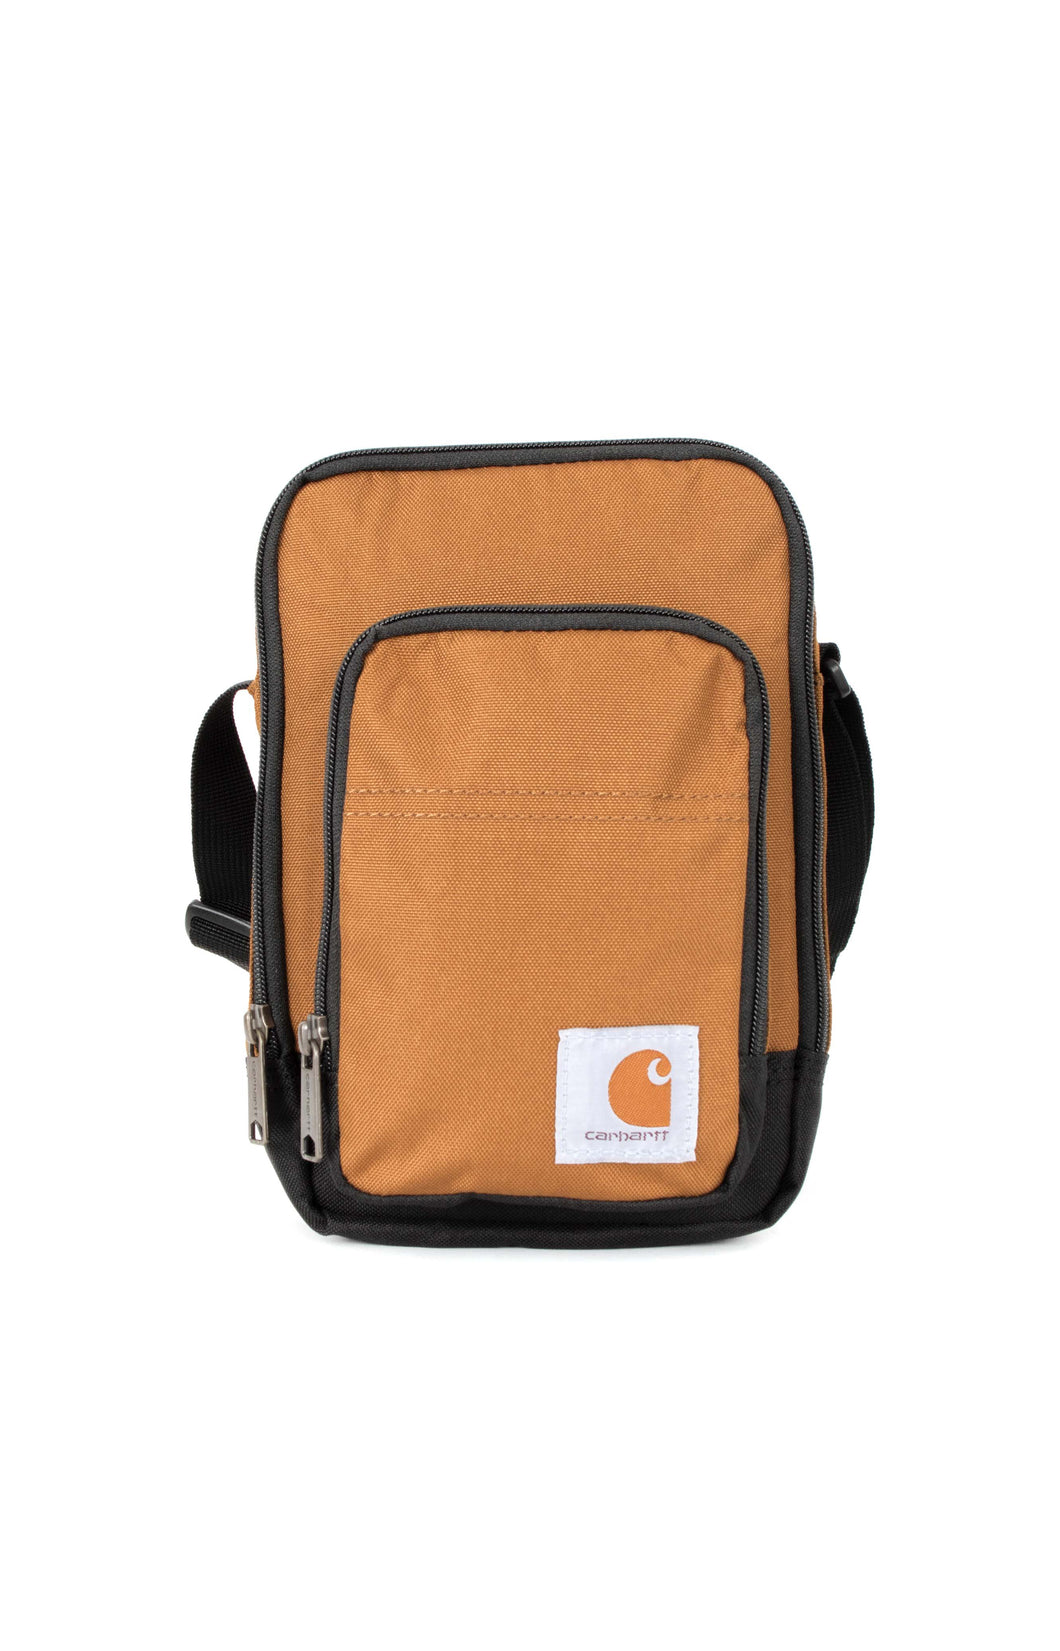 Carhartt Legacy Cross Body bag (Carhartt Brown)